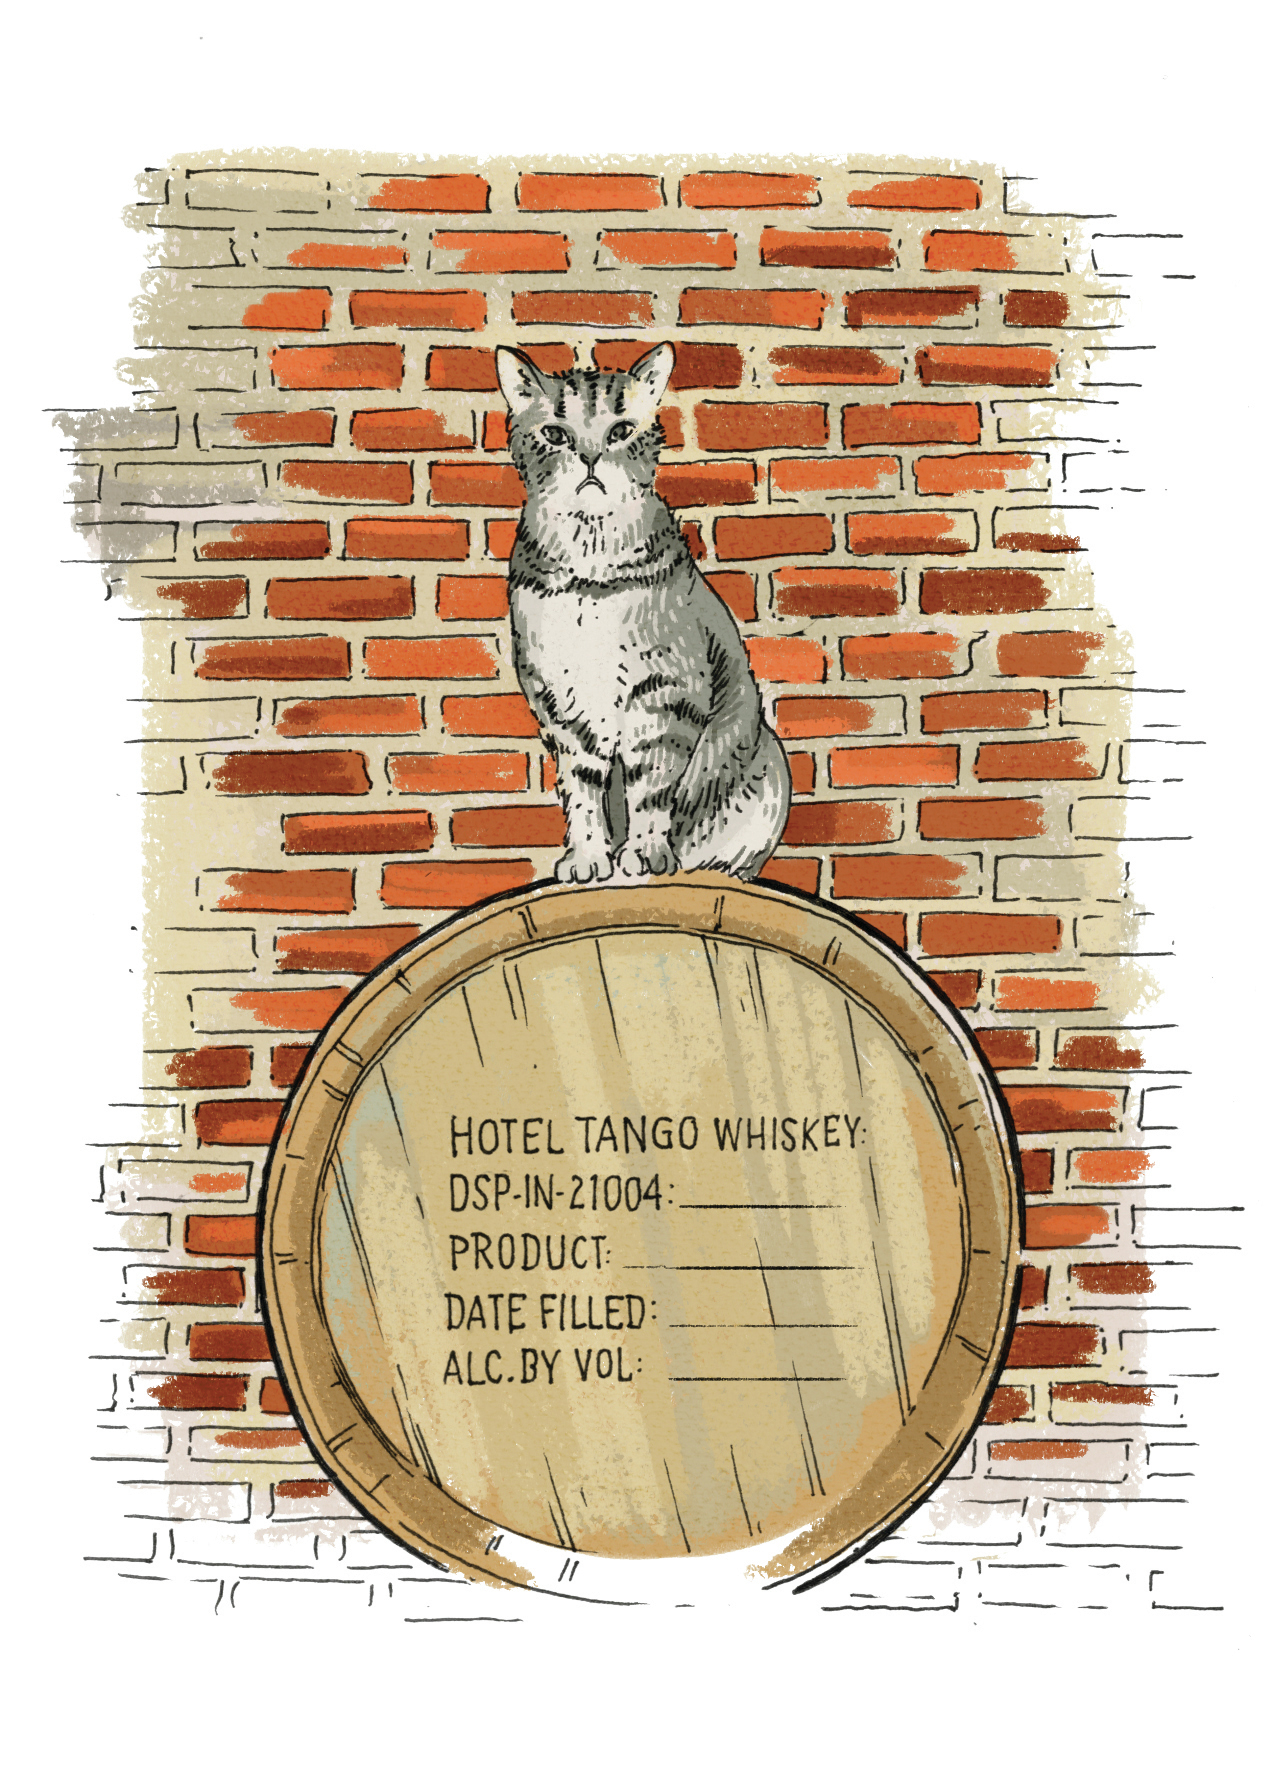 Distillery Cat Wanted: Must Be Affable, Brand-Boosting, Cold-Blooded Killer